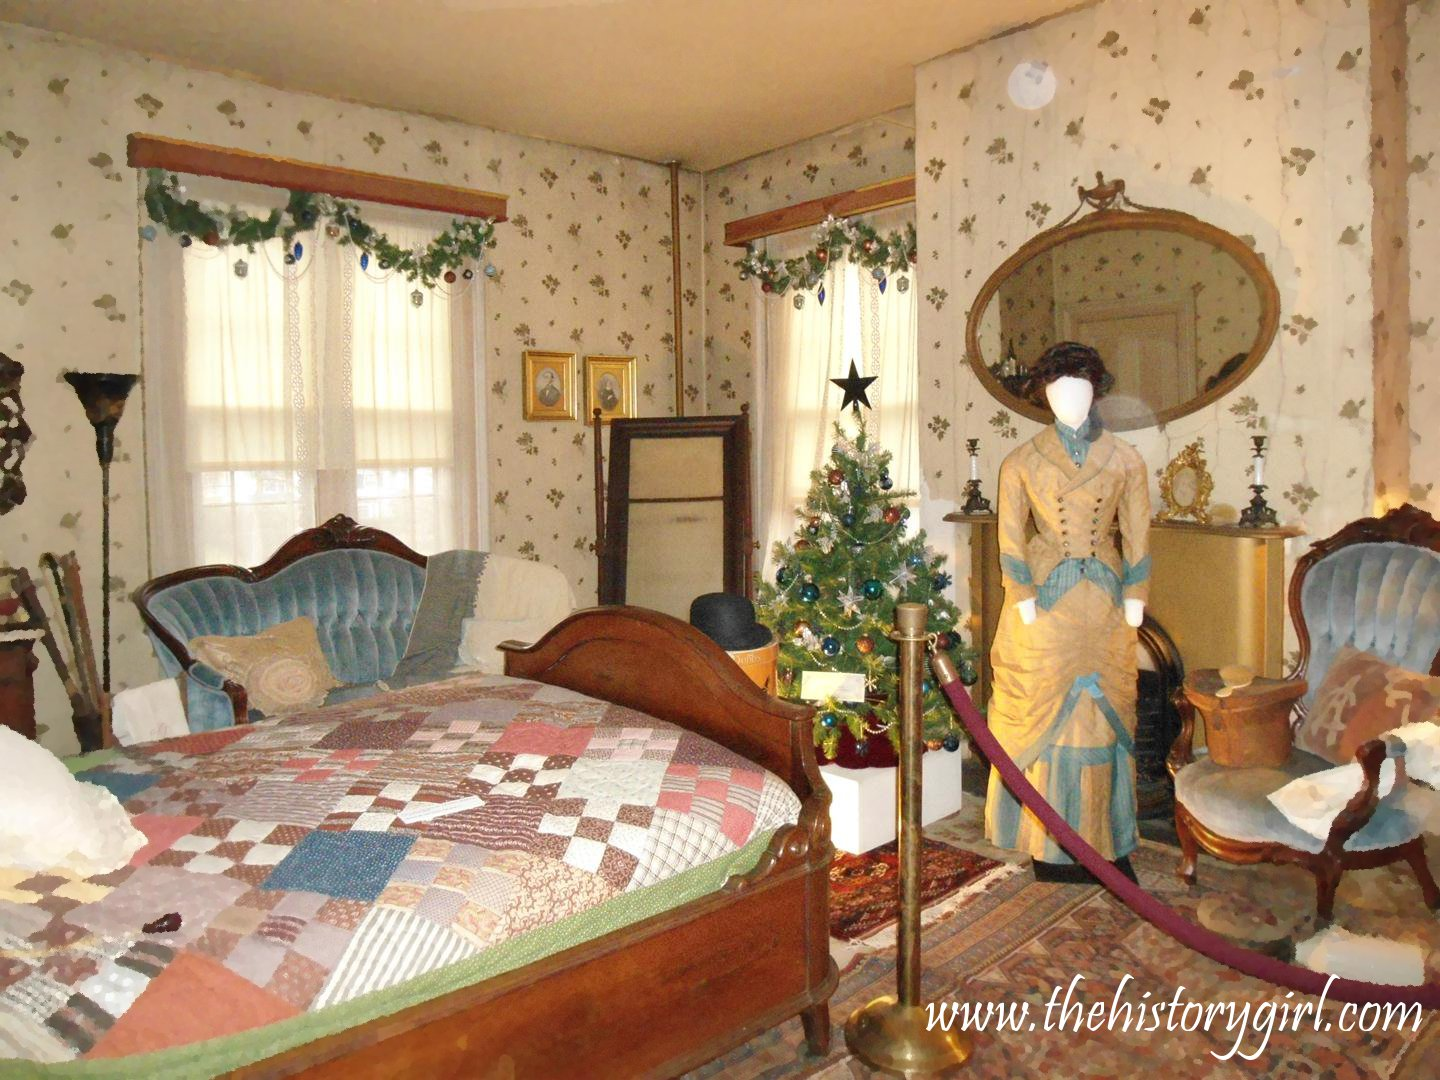 Conserving The Victorian Era At Acorn Hall The History Girl